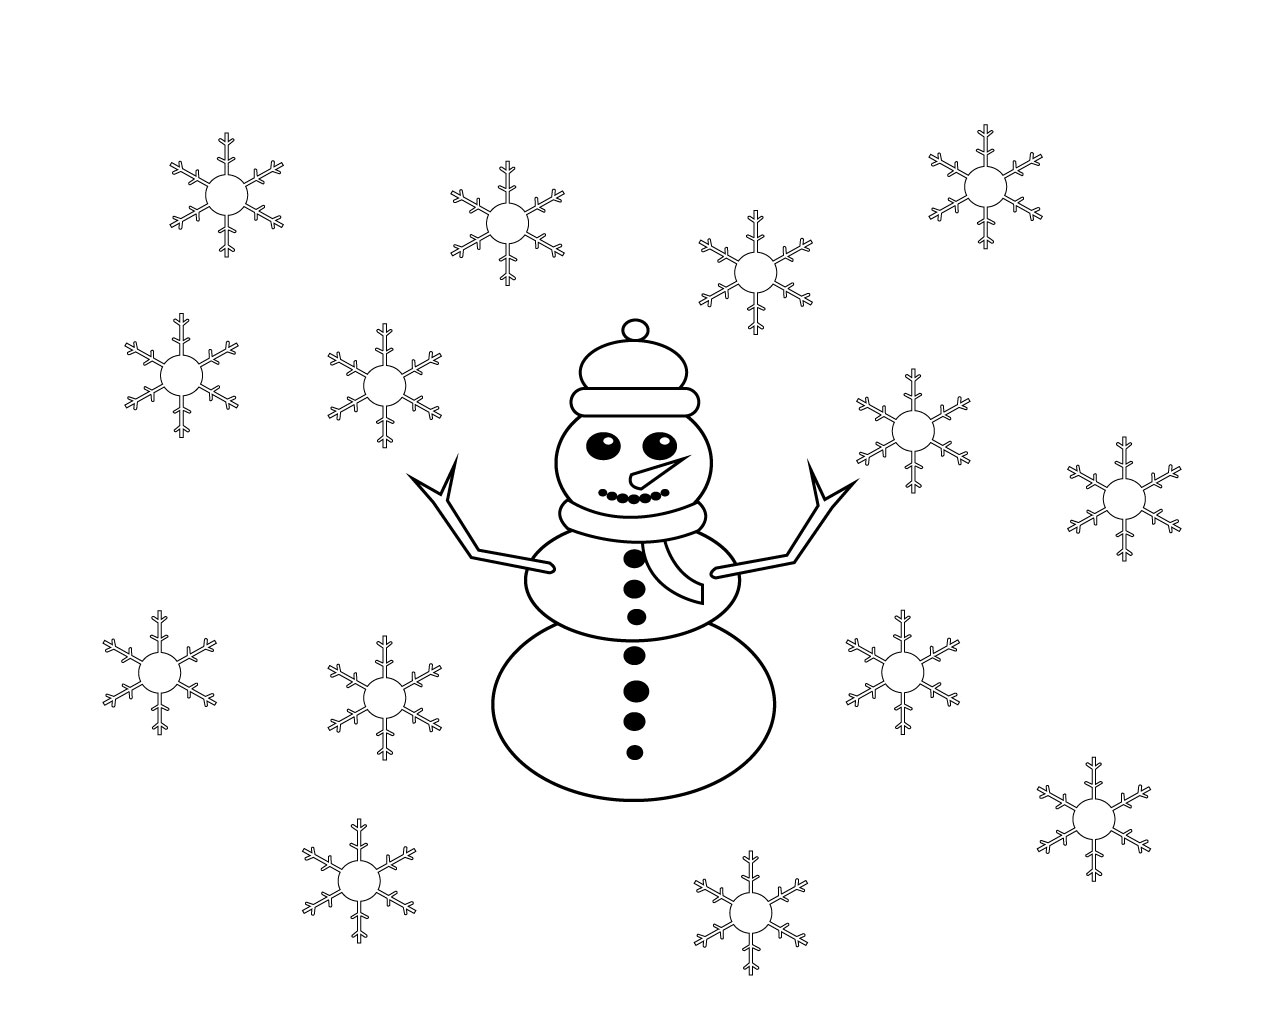 free coloring pages com christmas number 9 coloring pages for adults coloring pages coloring free christmas com pages